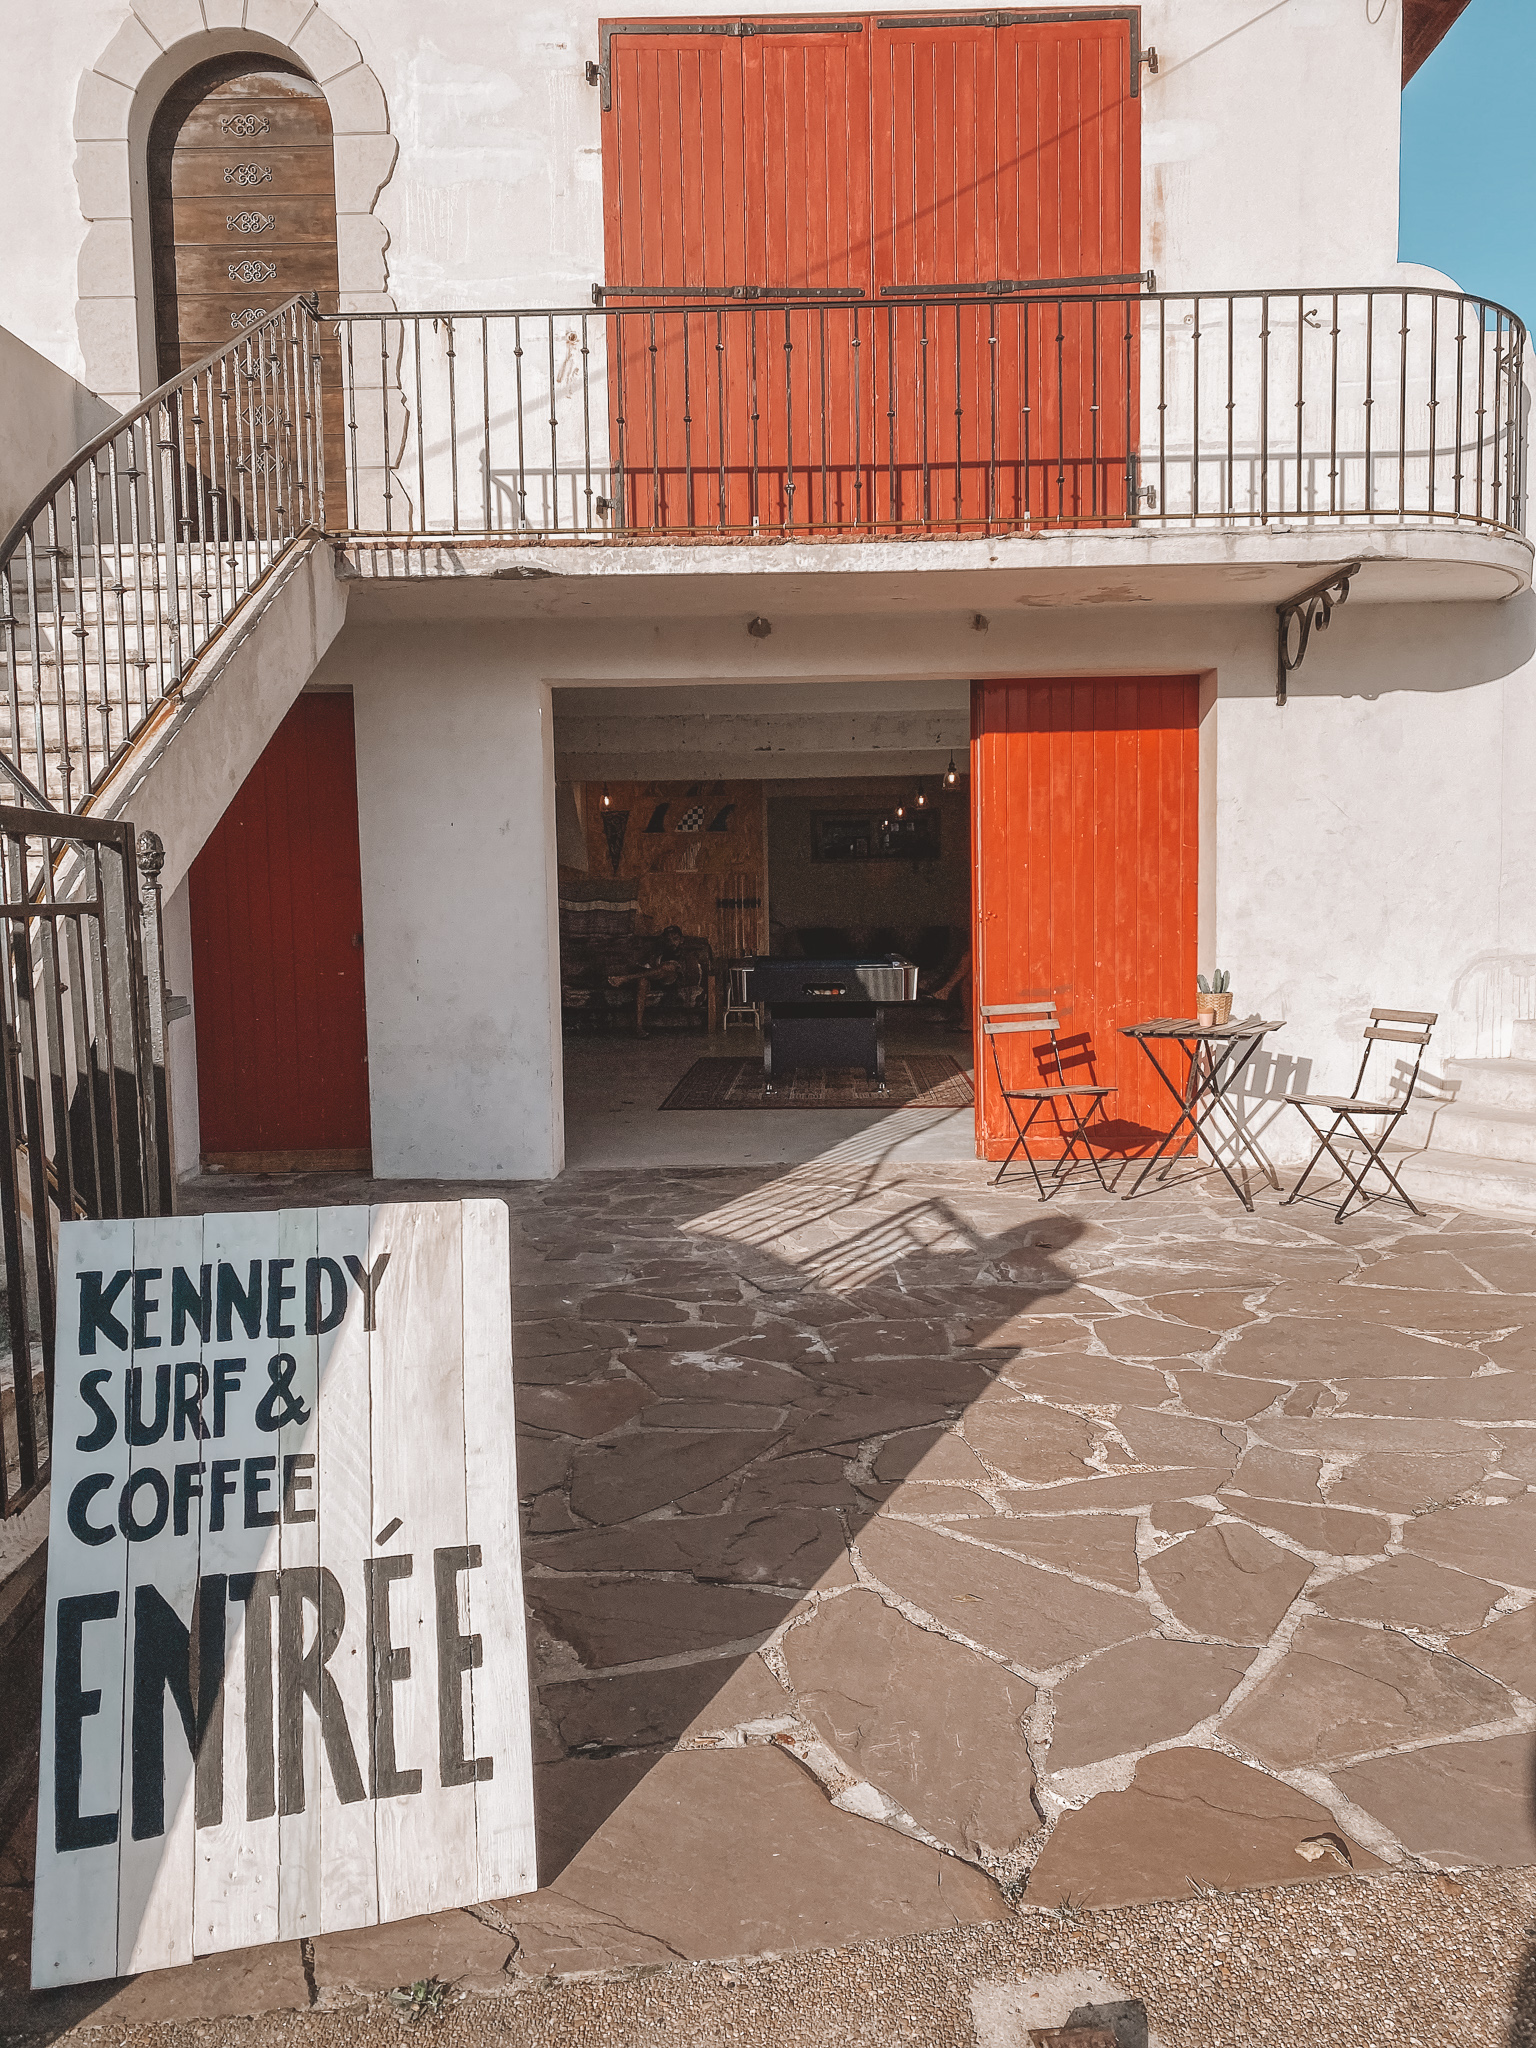 Kennedy Surf & Coffee Biarritz